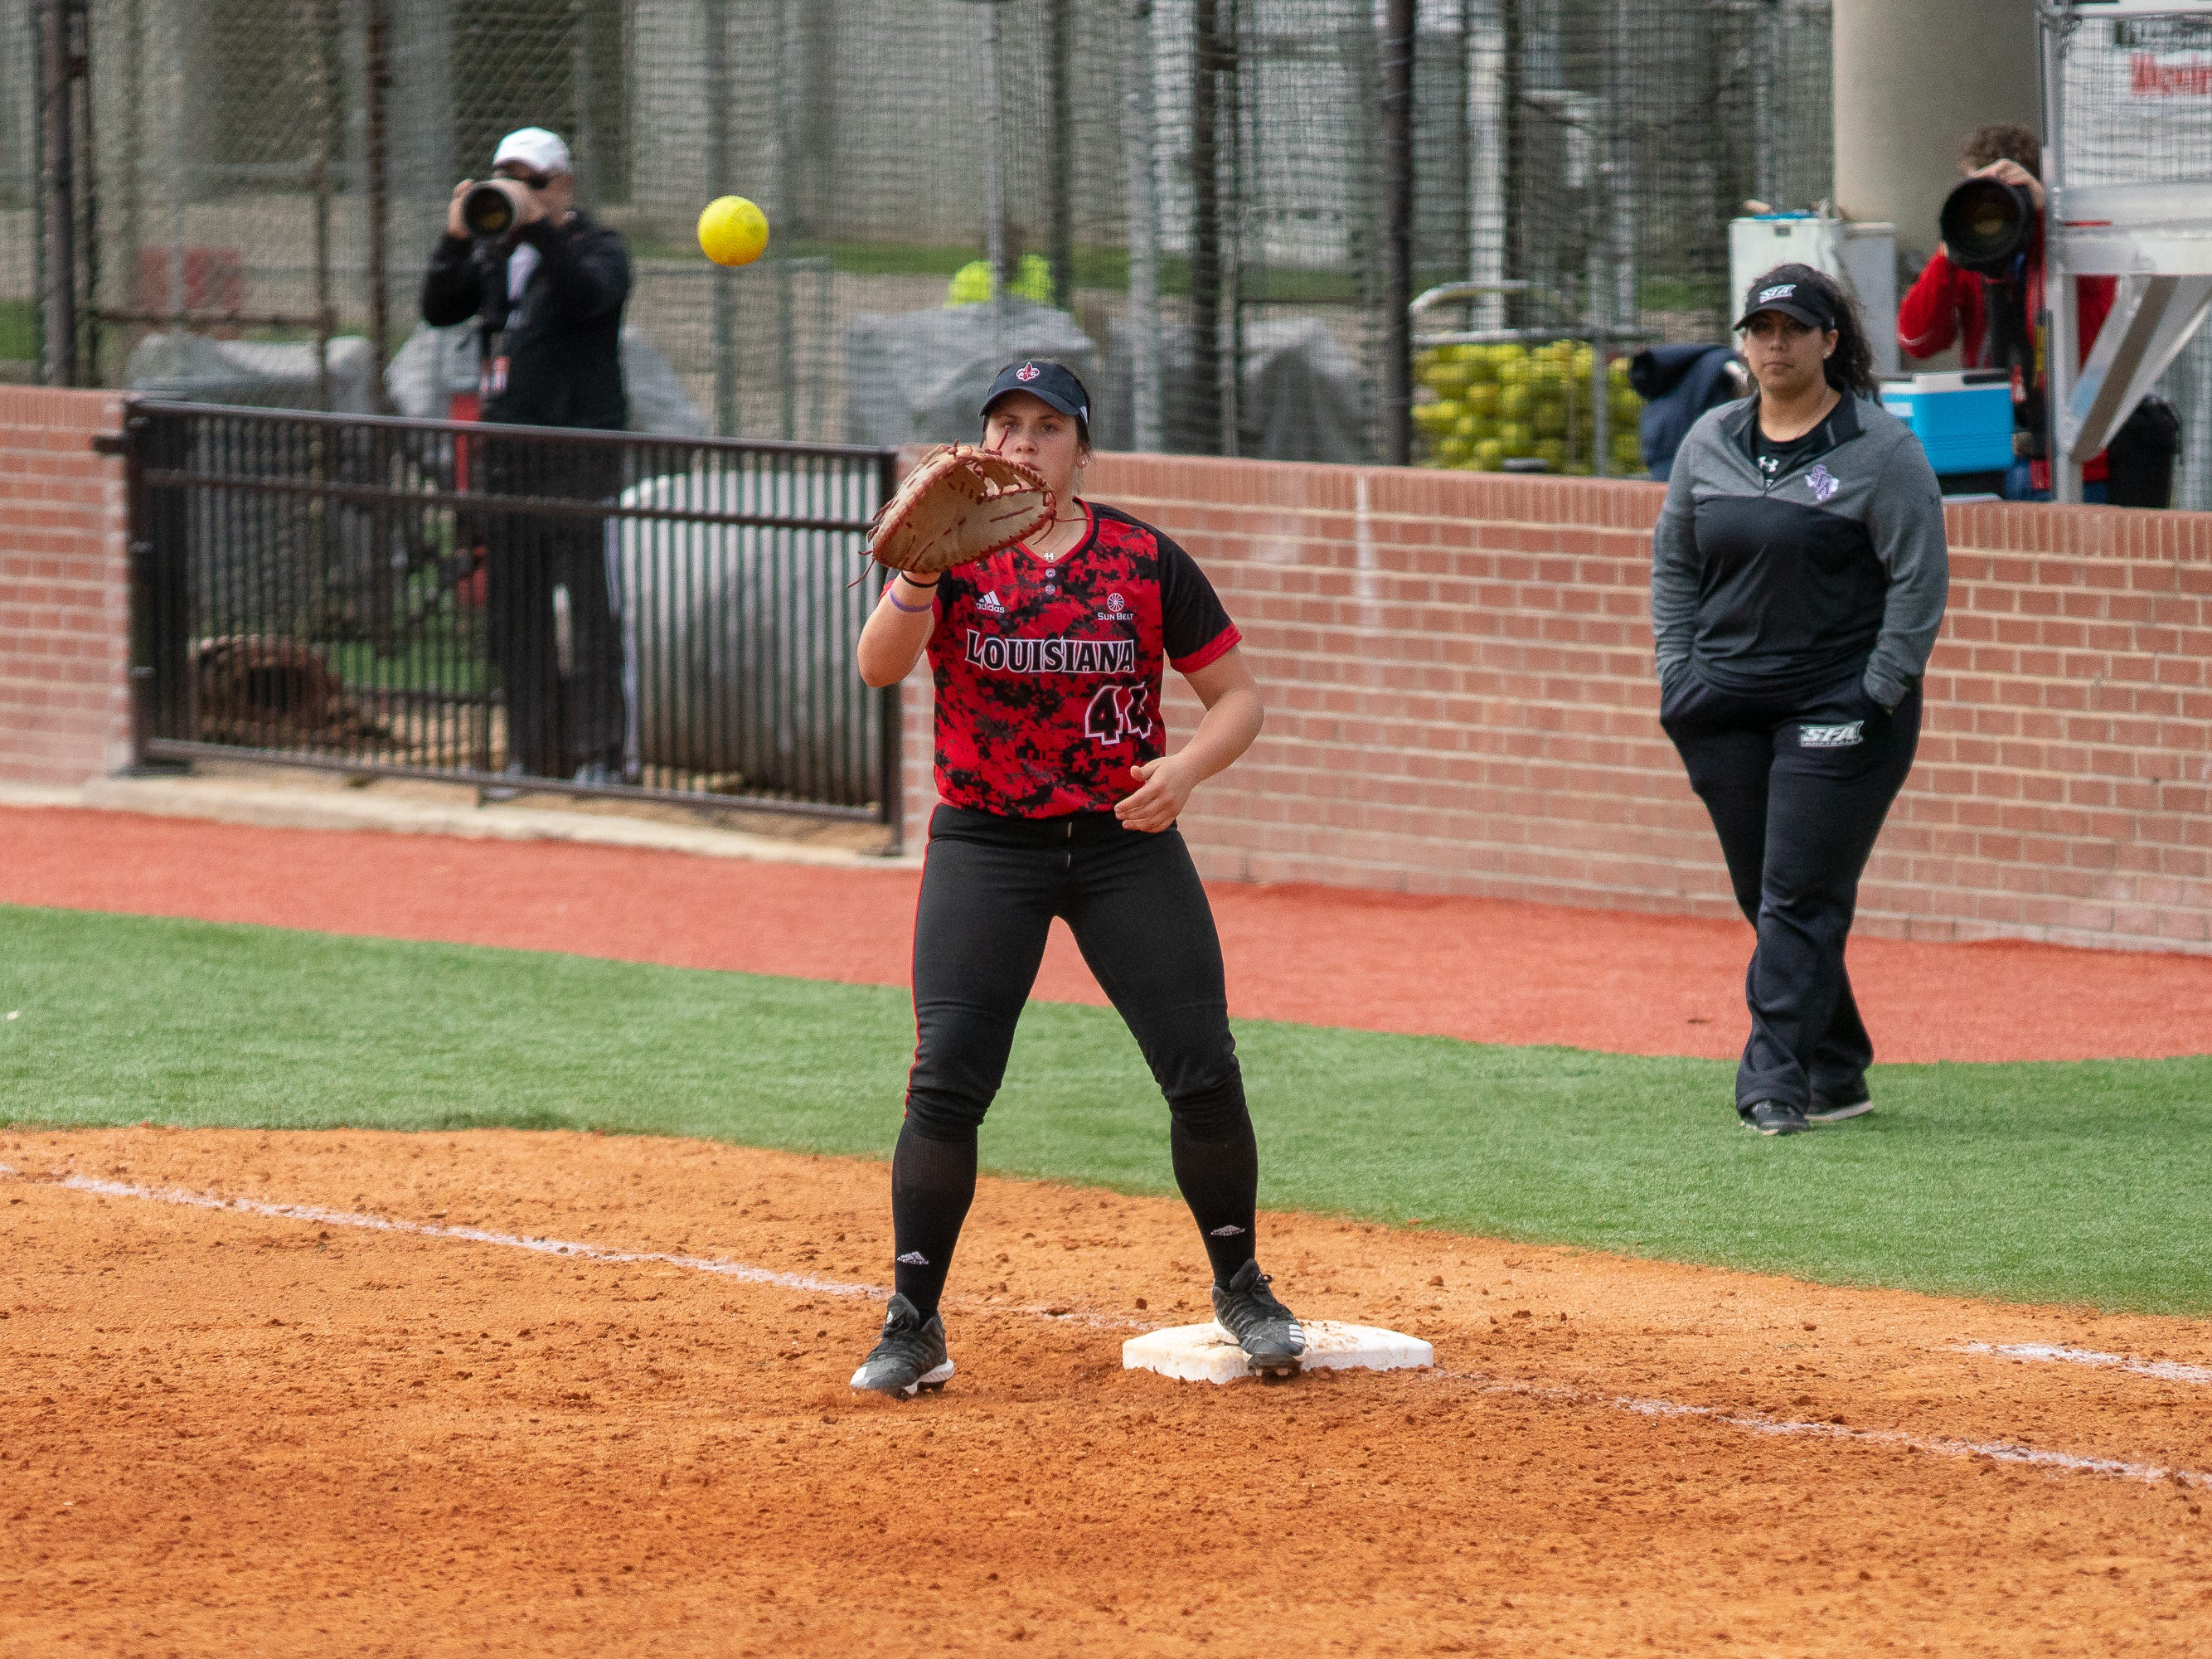 UL's Kourtney Gremillion catches the throw to first base as the Ragin' Cajuns take on Stephen F. Austin at Lamson Park on Saturday, Feb. 16, 2019.